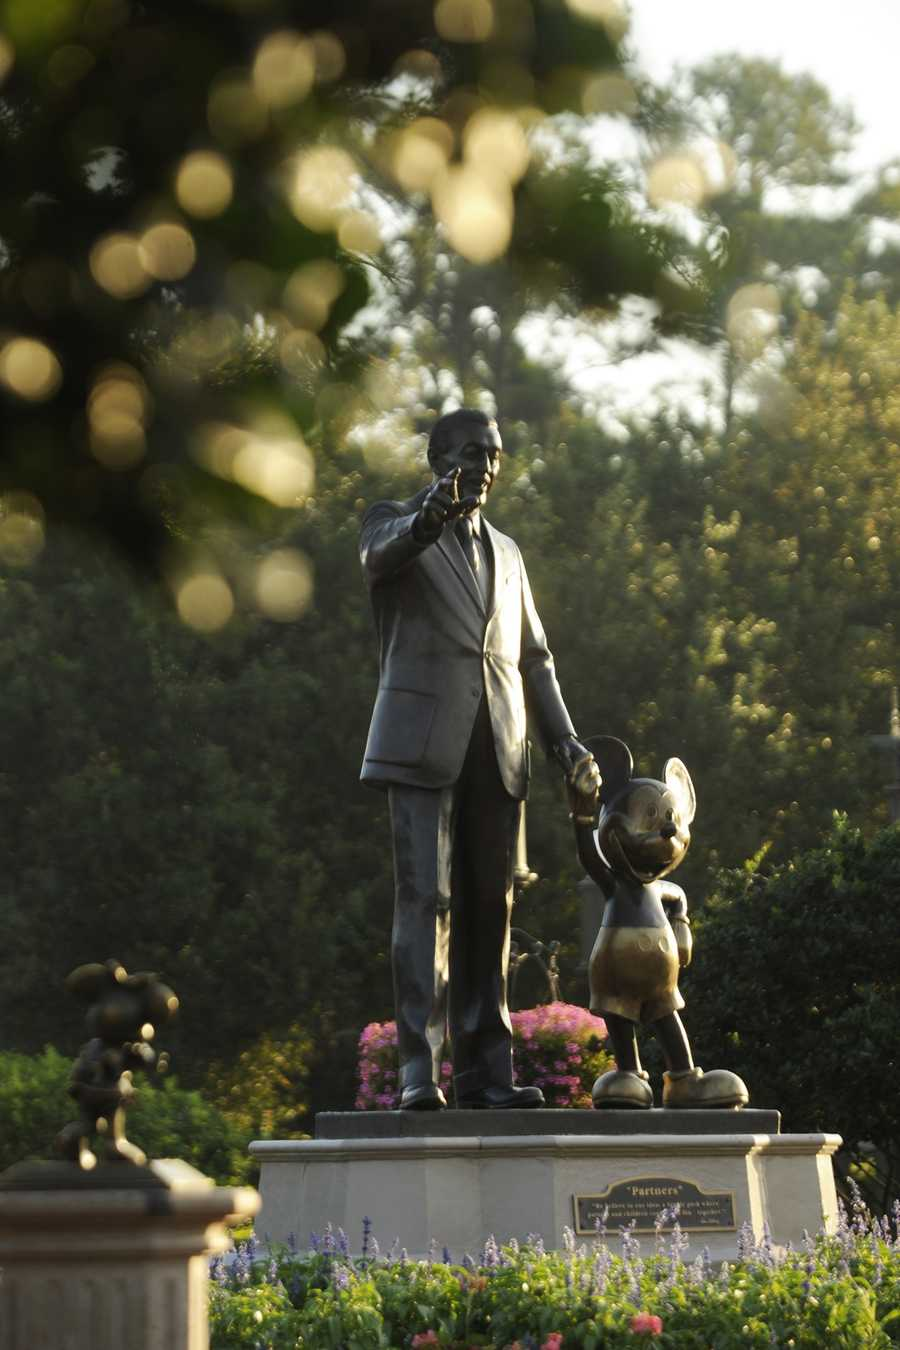 The statue of Walt Disney holding hands with Mickey Mouse known as the Partners Statue was unveiled at the Magic Kingdom in June 1995, and is the second Partners Statue after the first was installed at Disneyland in 1993.  Here are five facts about the famous statue.